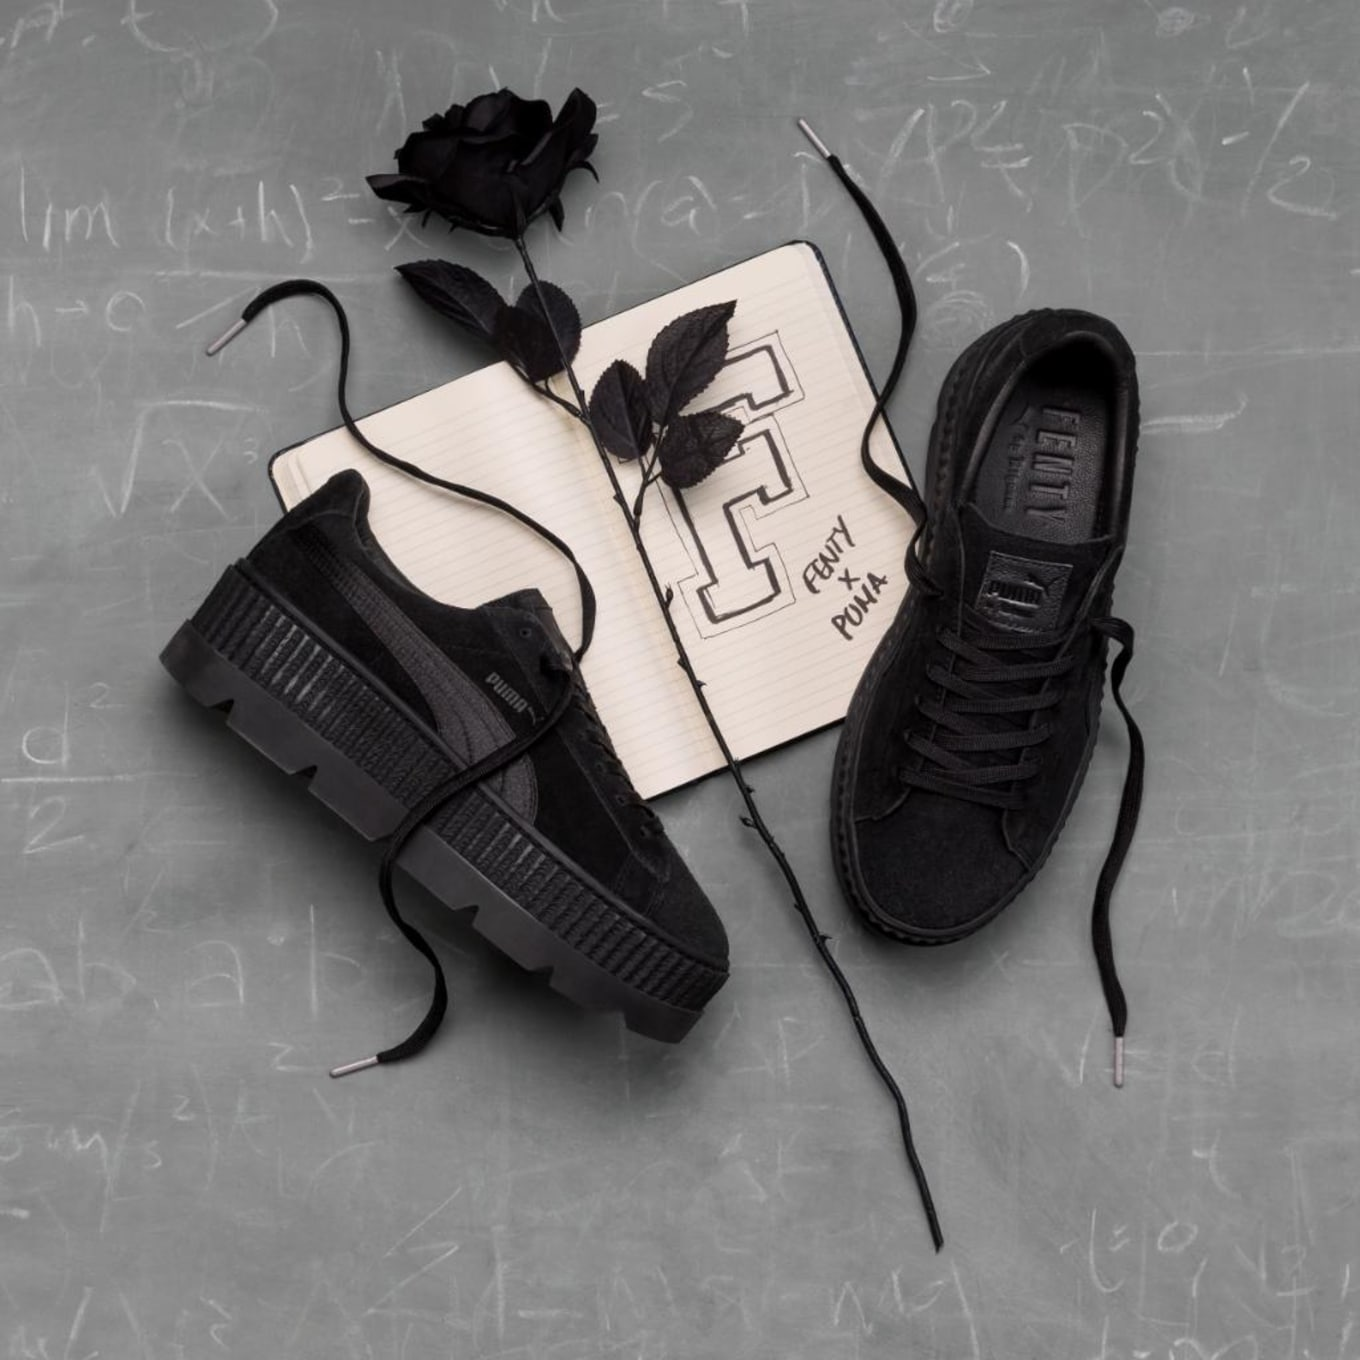 info for d2ce8 61c07 Rihanna x Puma Fenty Suede Cleated Creeper Release Date ...